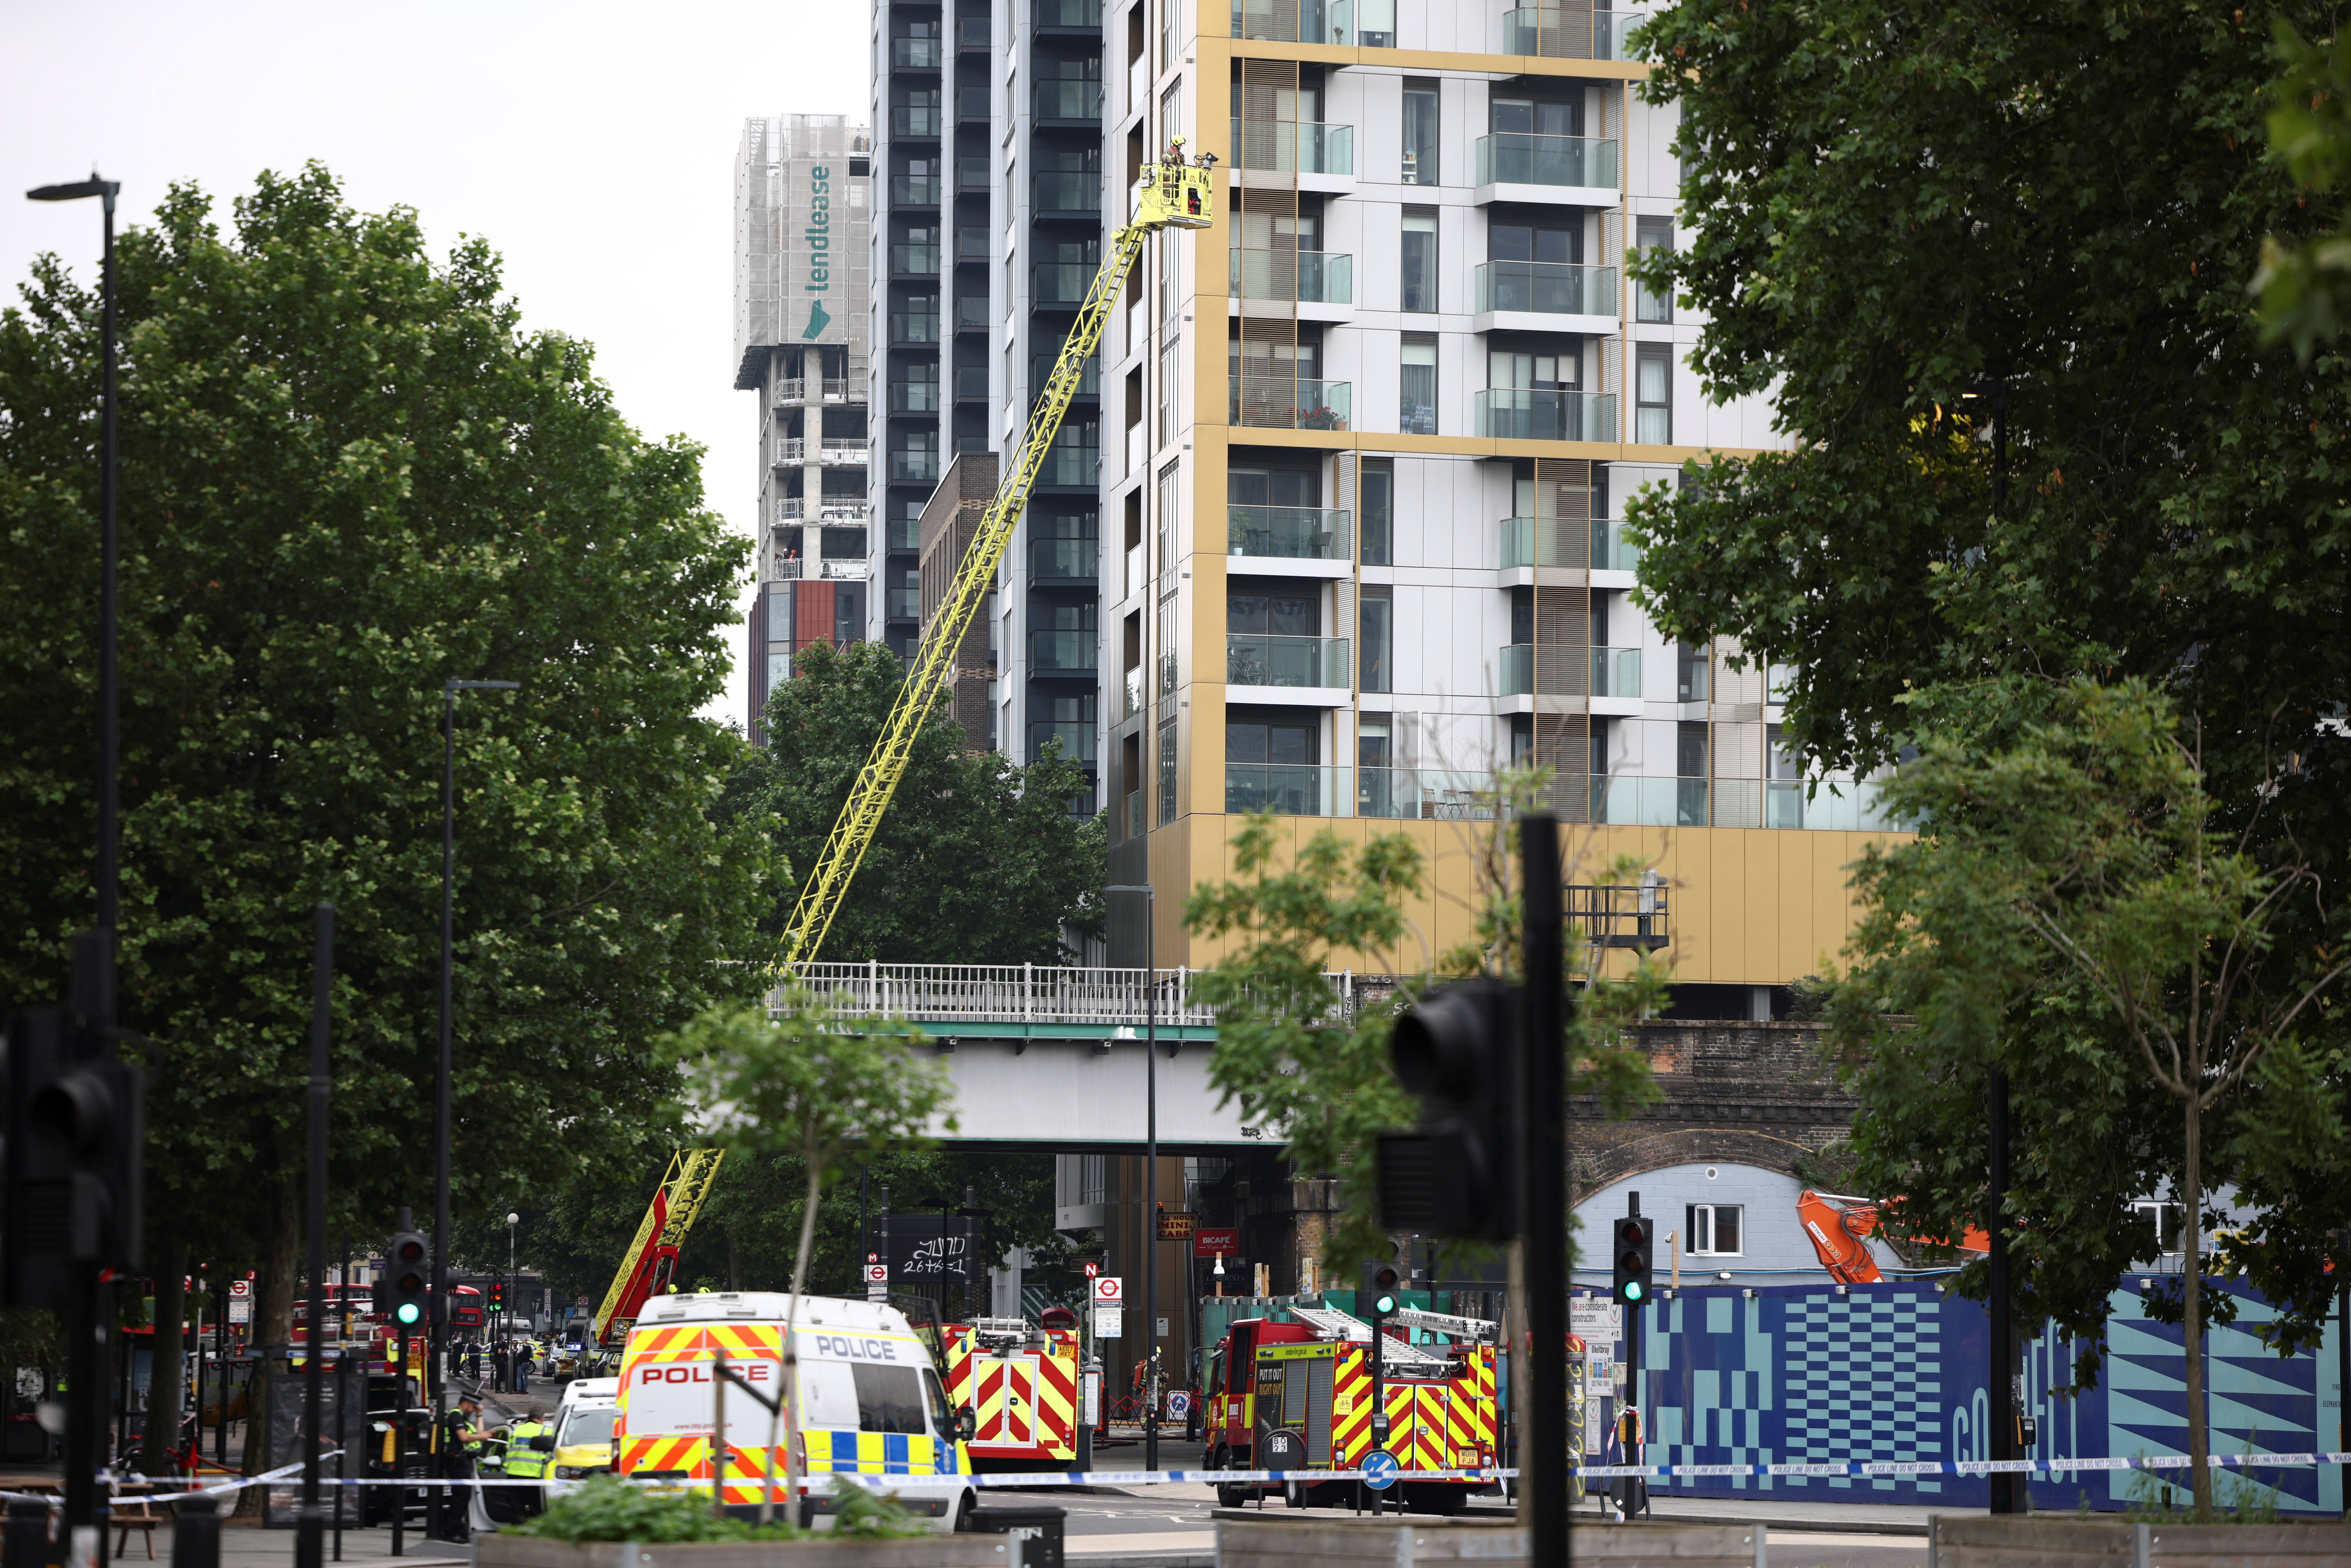 Emergency crews attend to a scene of fire near the Elephant and Castle train station in London, Britain June 28, 2021. REUTERS/Henry Nicholls